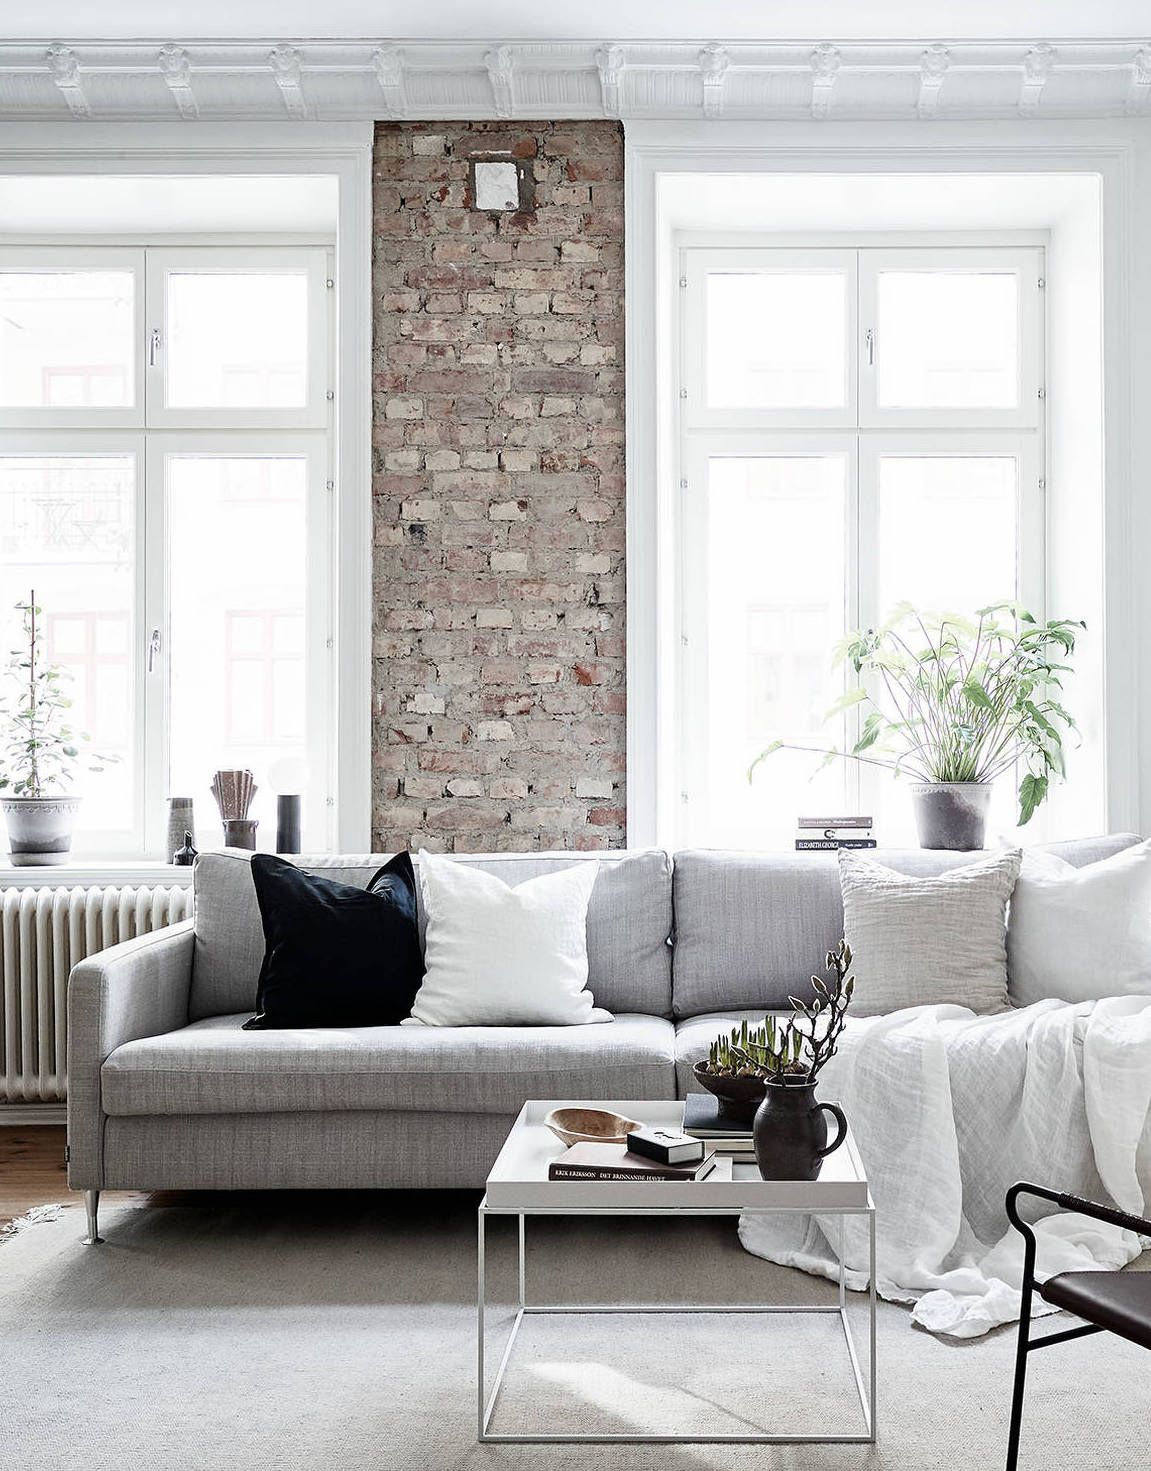 Great Mixture Of Materials Coco Lapine Design Home Home N Decor Home And Living